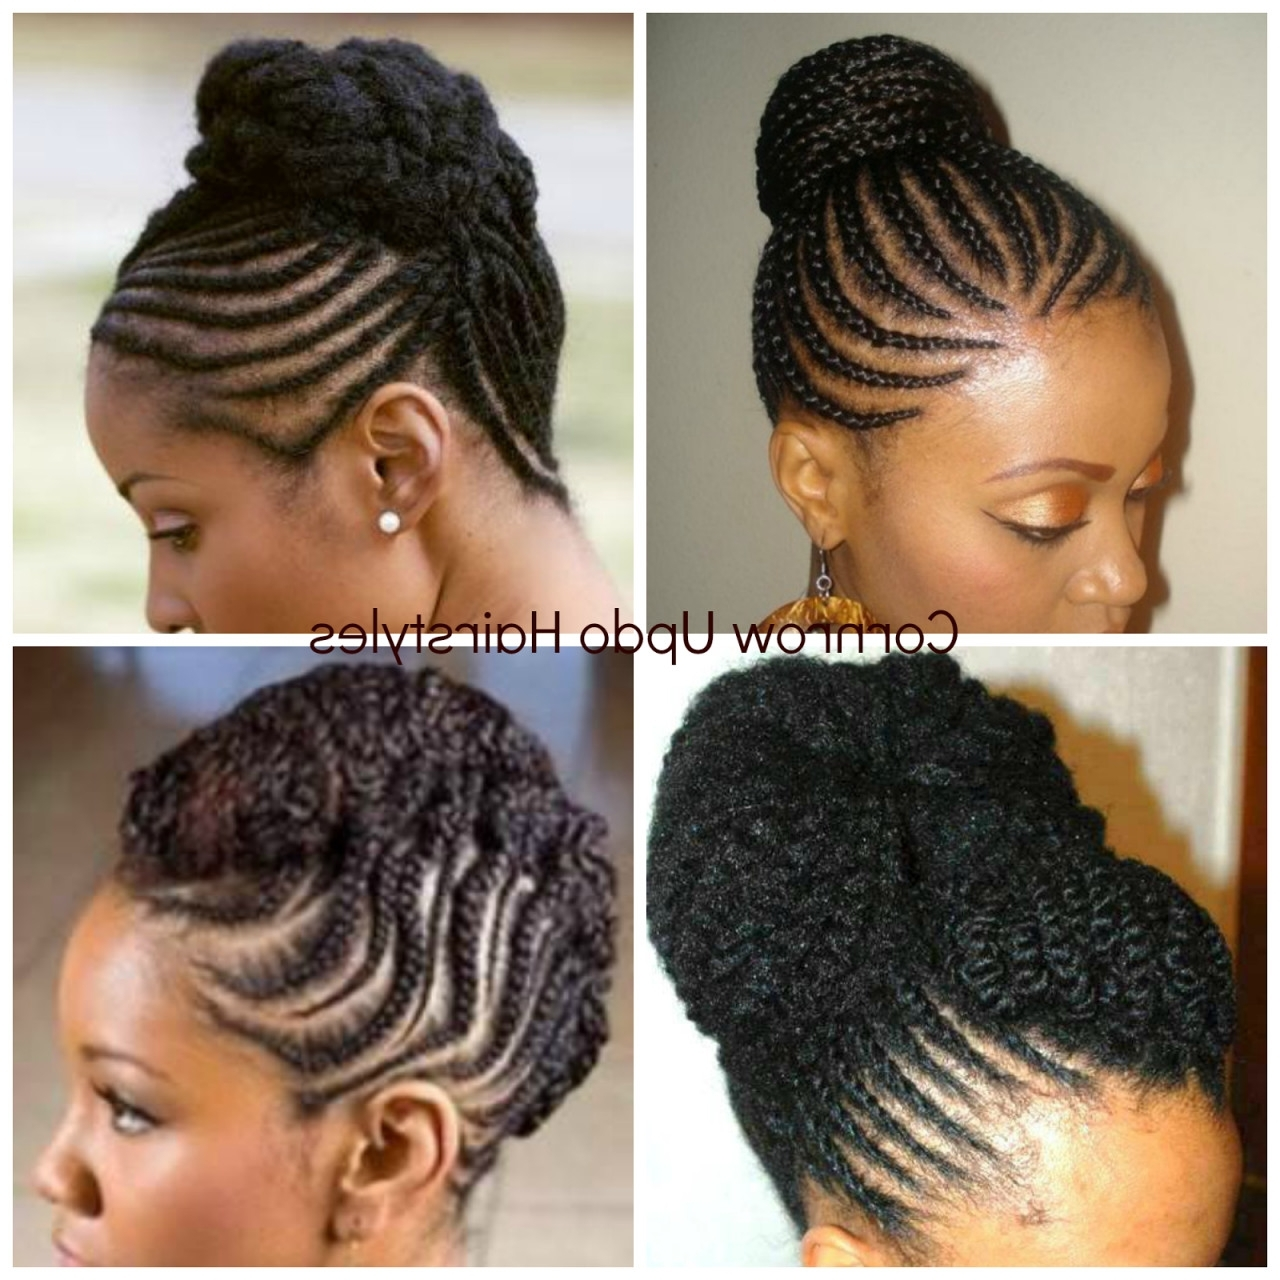 Natural Cornrow Updos For African American Hairstyles Pictures Regarding Most Current Cornrows African American Hairstyles (View 10 of 15)